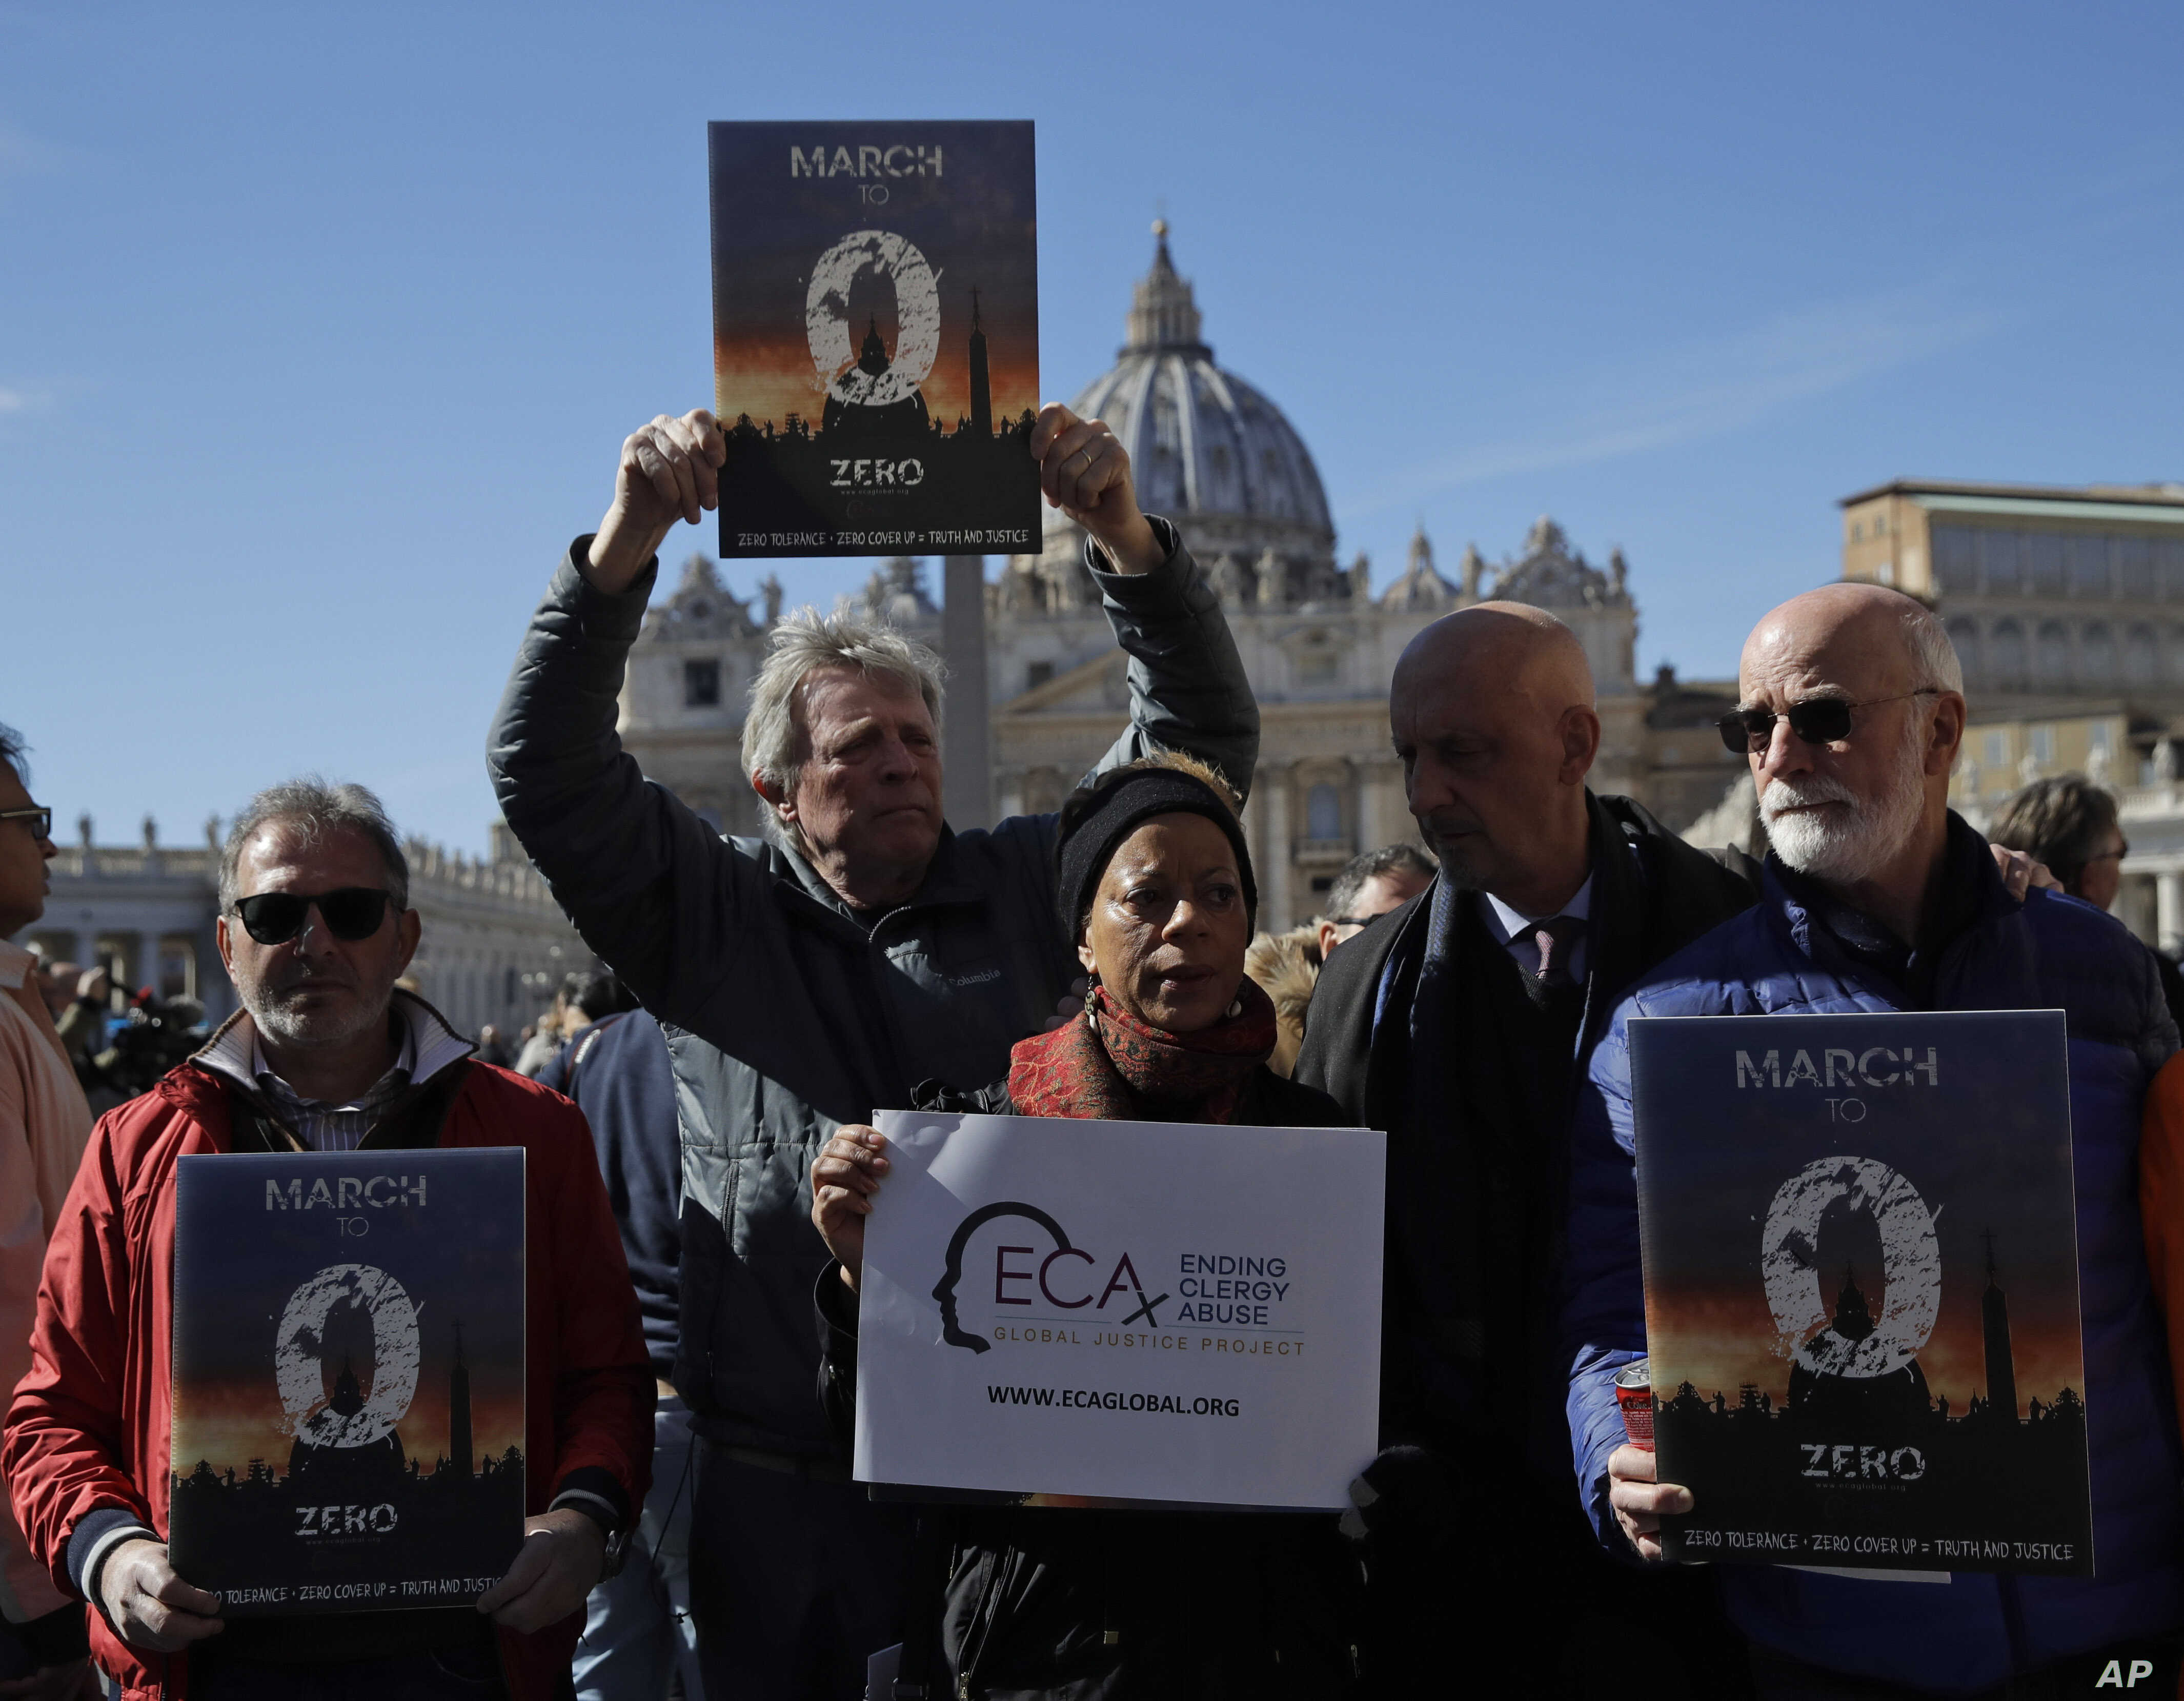 Sex abuse survivors and members of ECA (Ending Clergy Abuse), show banners in front of St. Peter's Square at the Vatican as they meet reporters, Feb. 24, 2019.